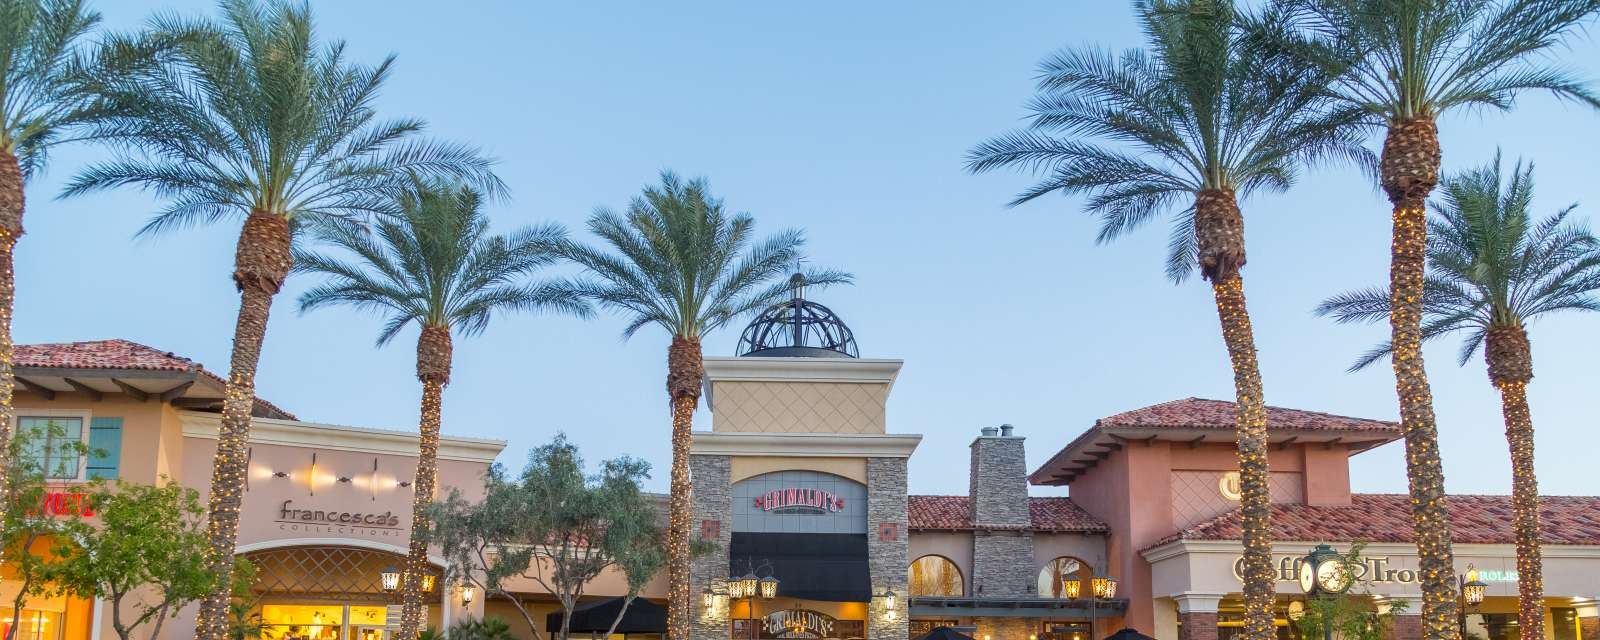 The Shoppes at Casa Paloma | Chandler Pavilions